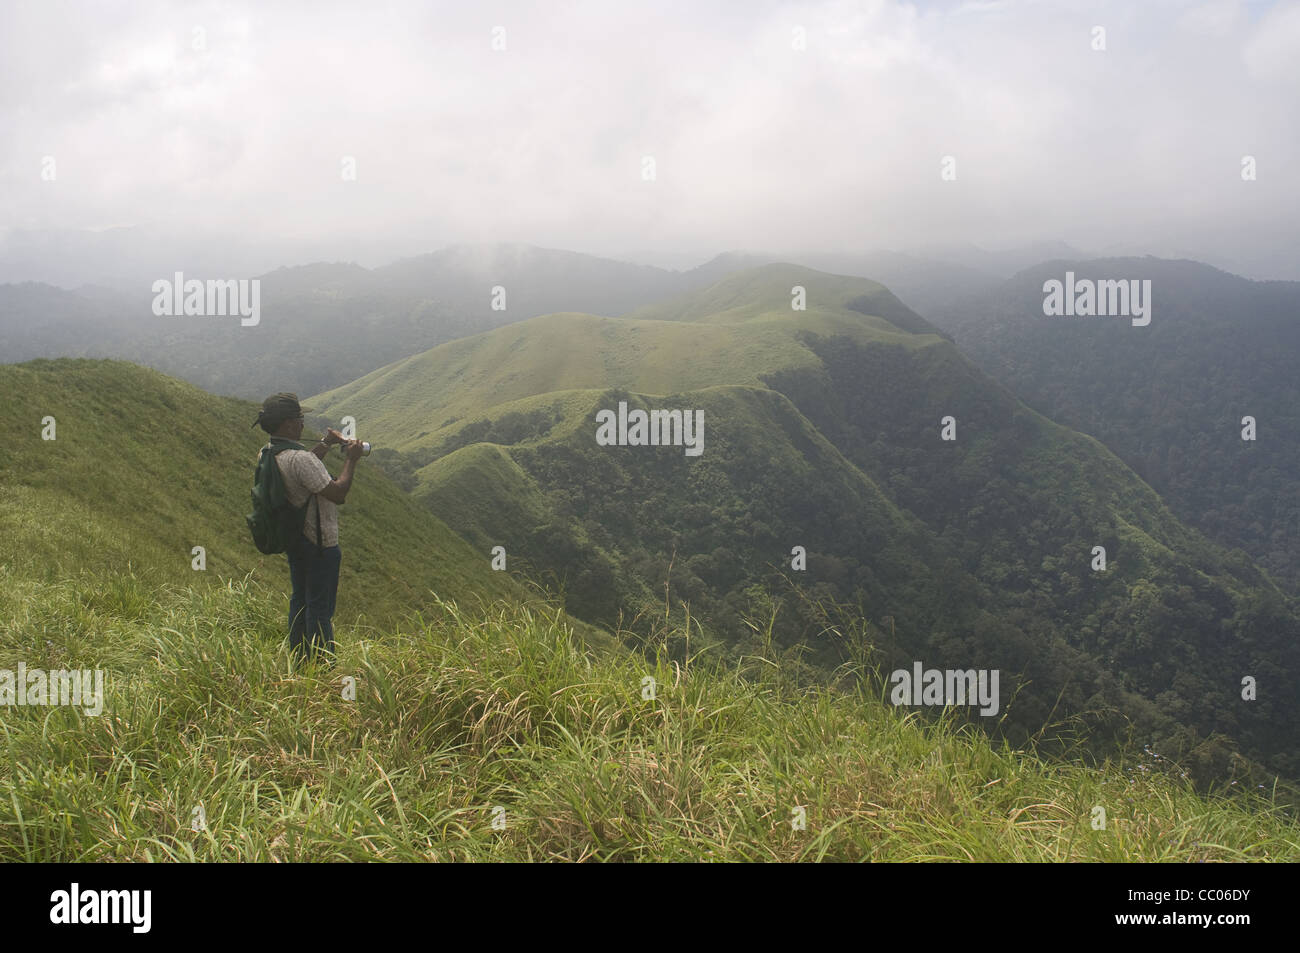 Grassland biomes in the periyar tiger reserve Stock Photo